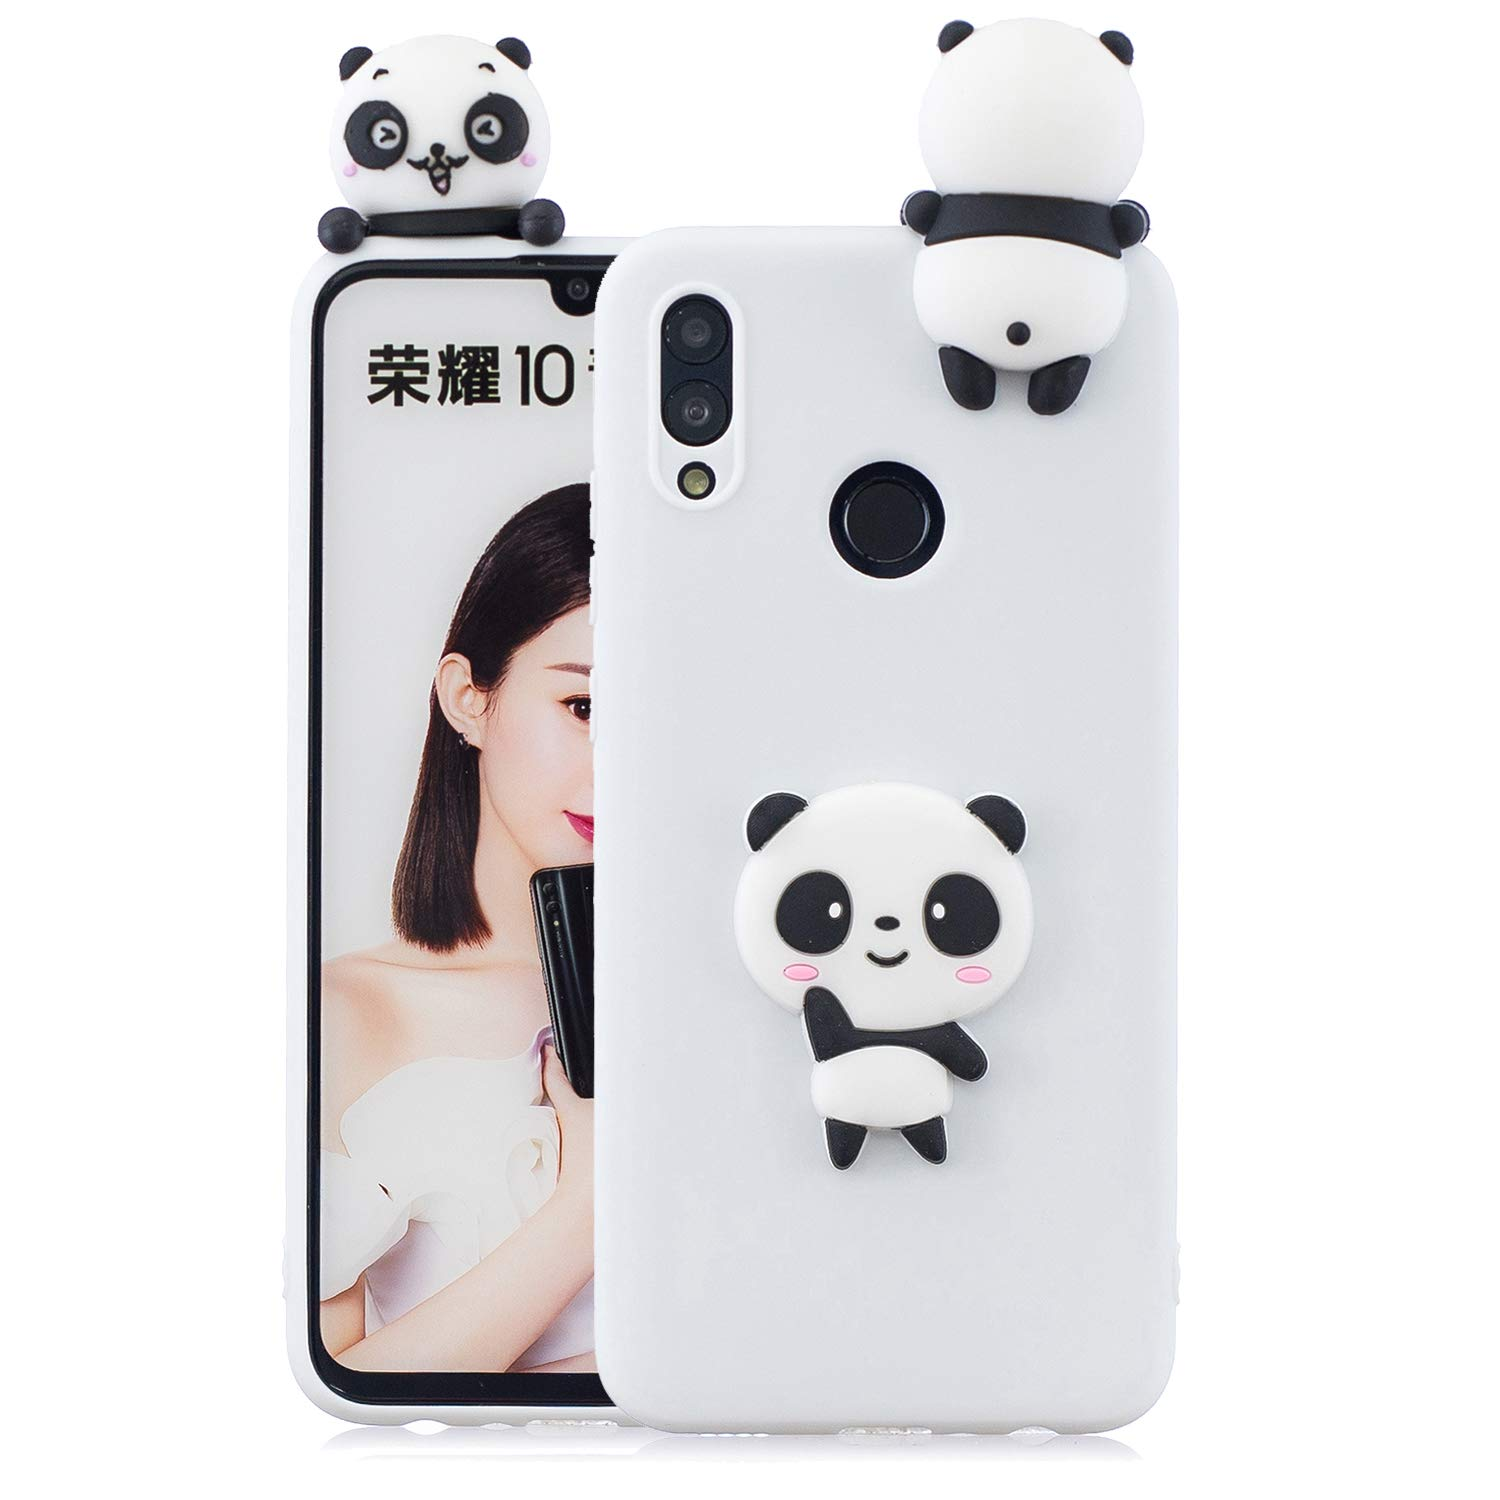 TPU Case for Huawei P Smart 2019/Huawei Honor 10 Lite,Moiky Funny 3D White Panda Design Ultra Thin Soft Silicone Resistant Back Cover Phone Case Unique Style Protect Case by MOIKY (Image #2)